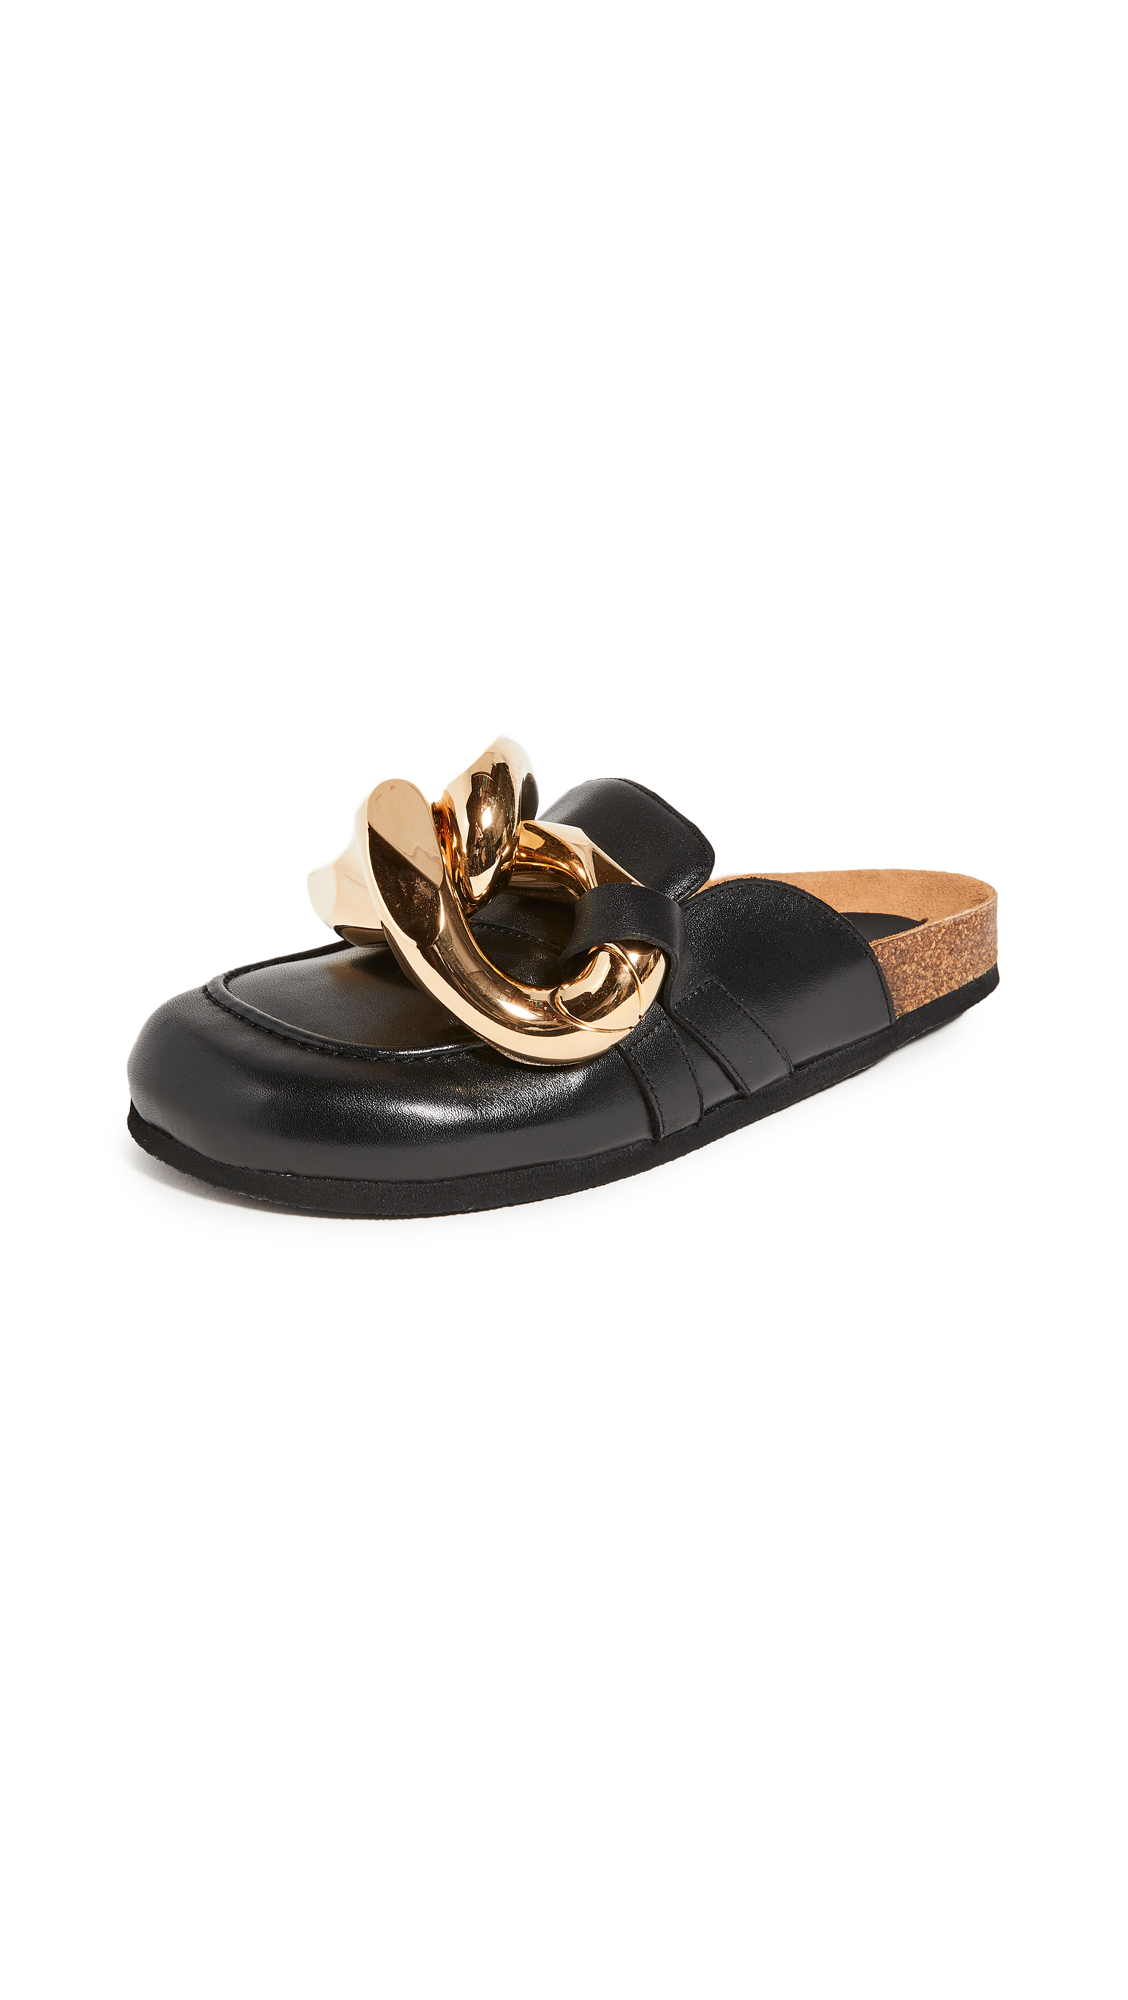 JW Anderson Cylinder-heel Leather Mules in Black White